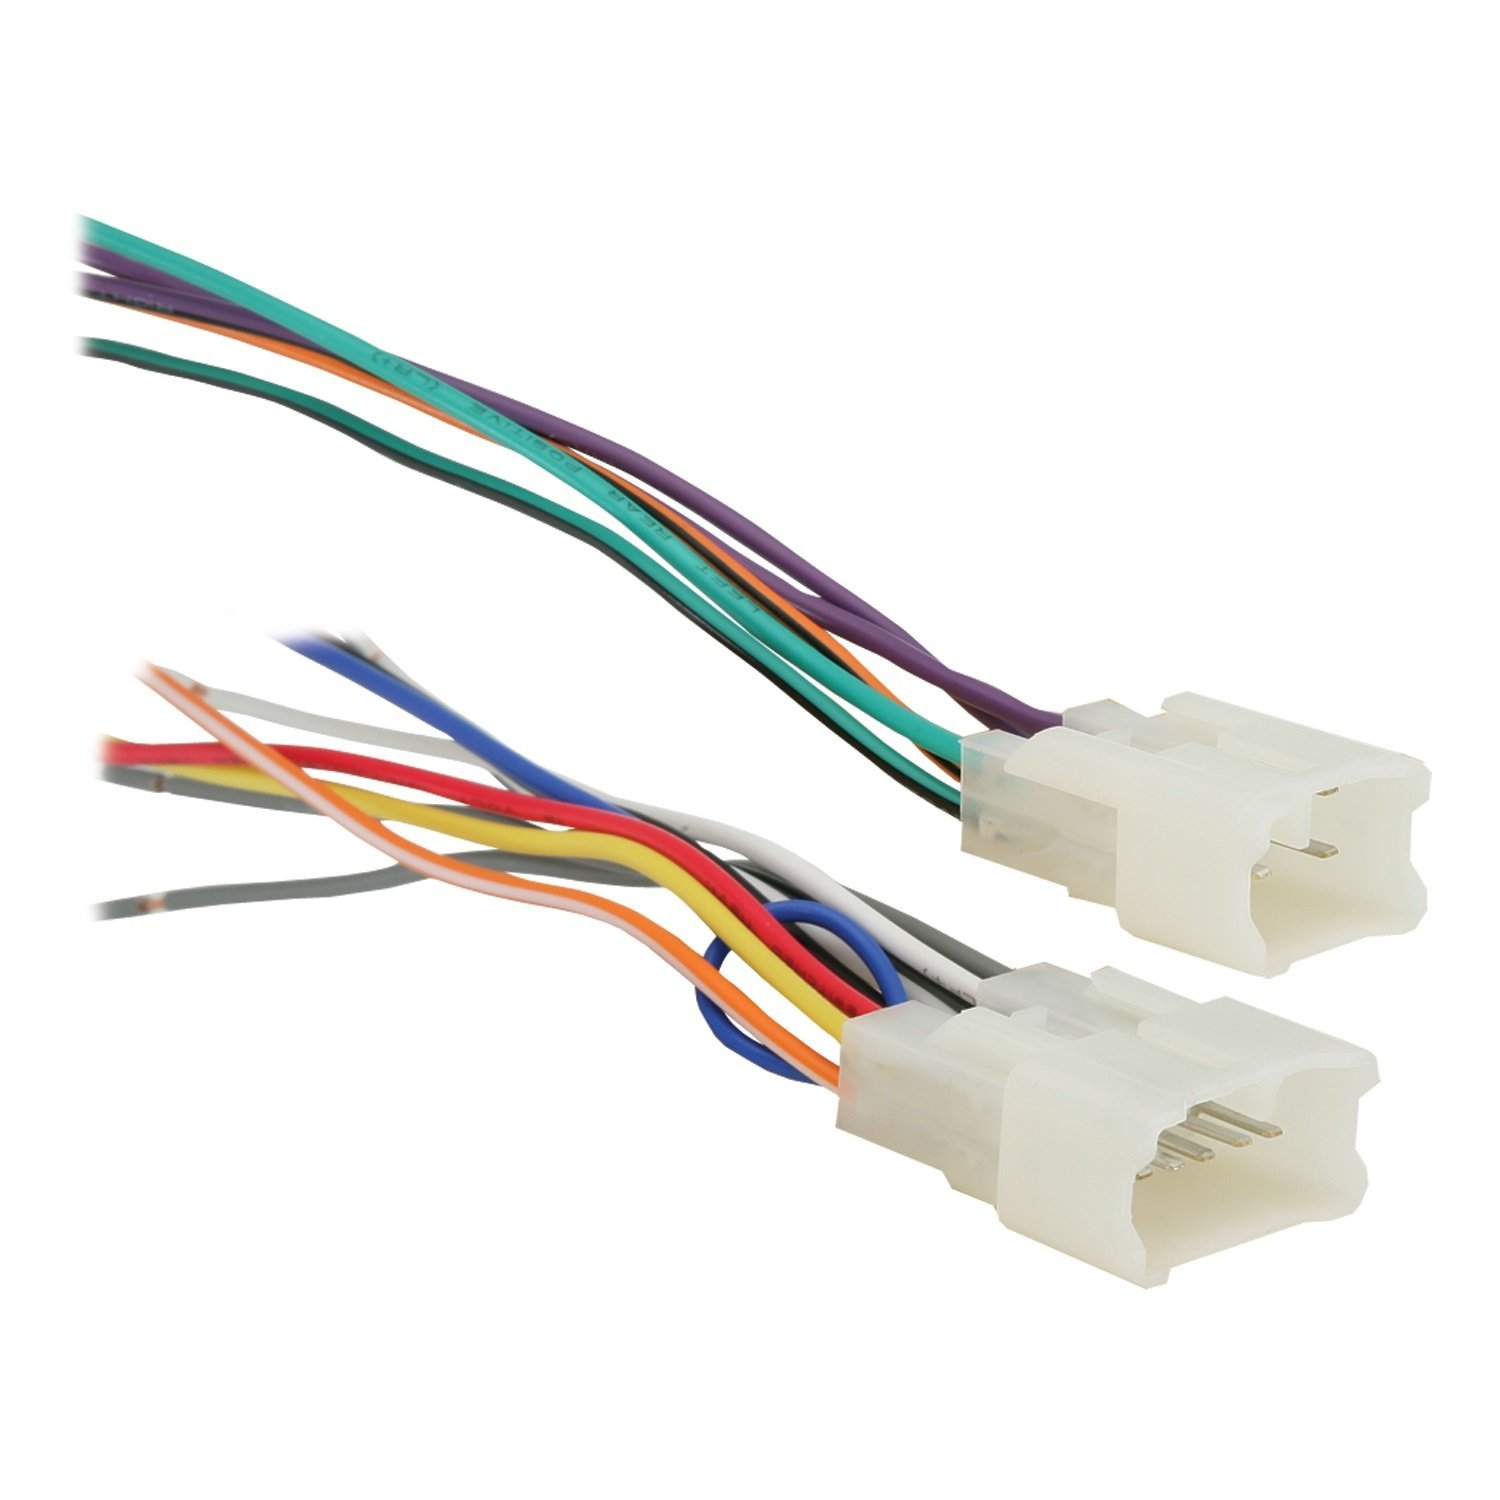 pumpkin car stereo wiring pumpkin image wiring diagram 3 handy tips for android car stereo wiring latest pumpkin on pumpkin car stereo wiring